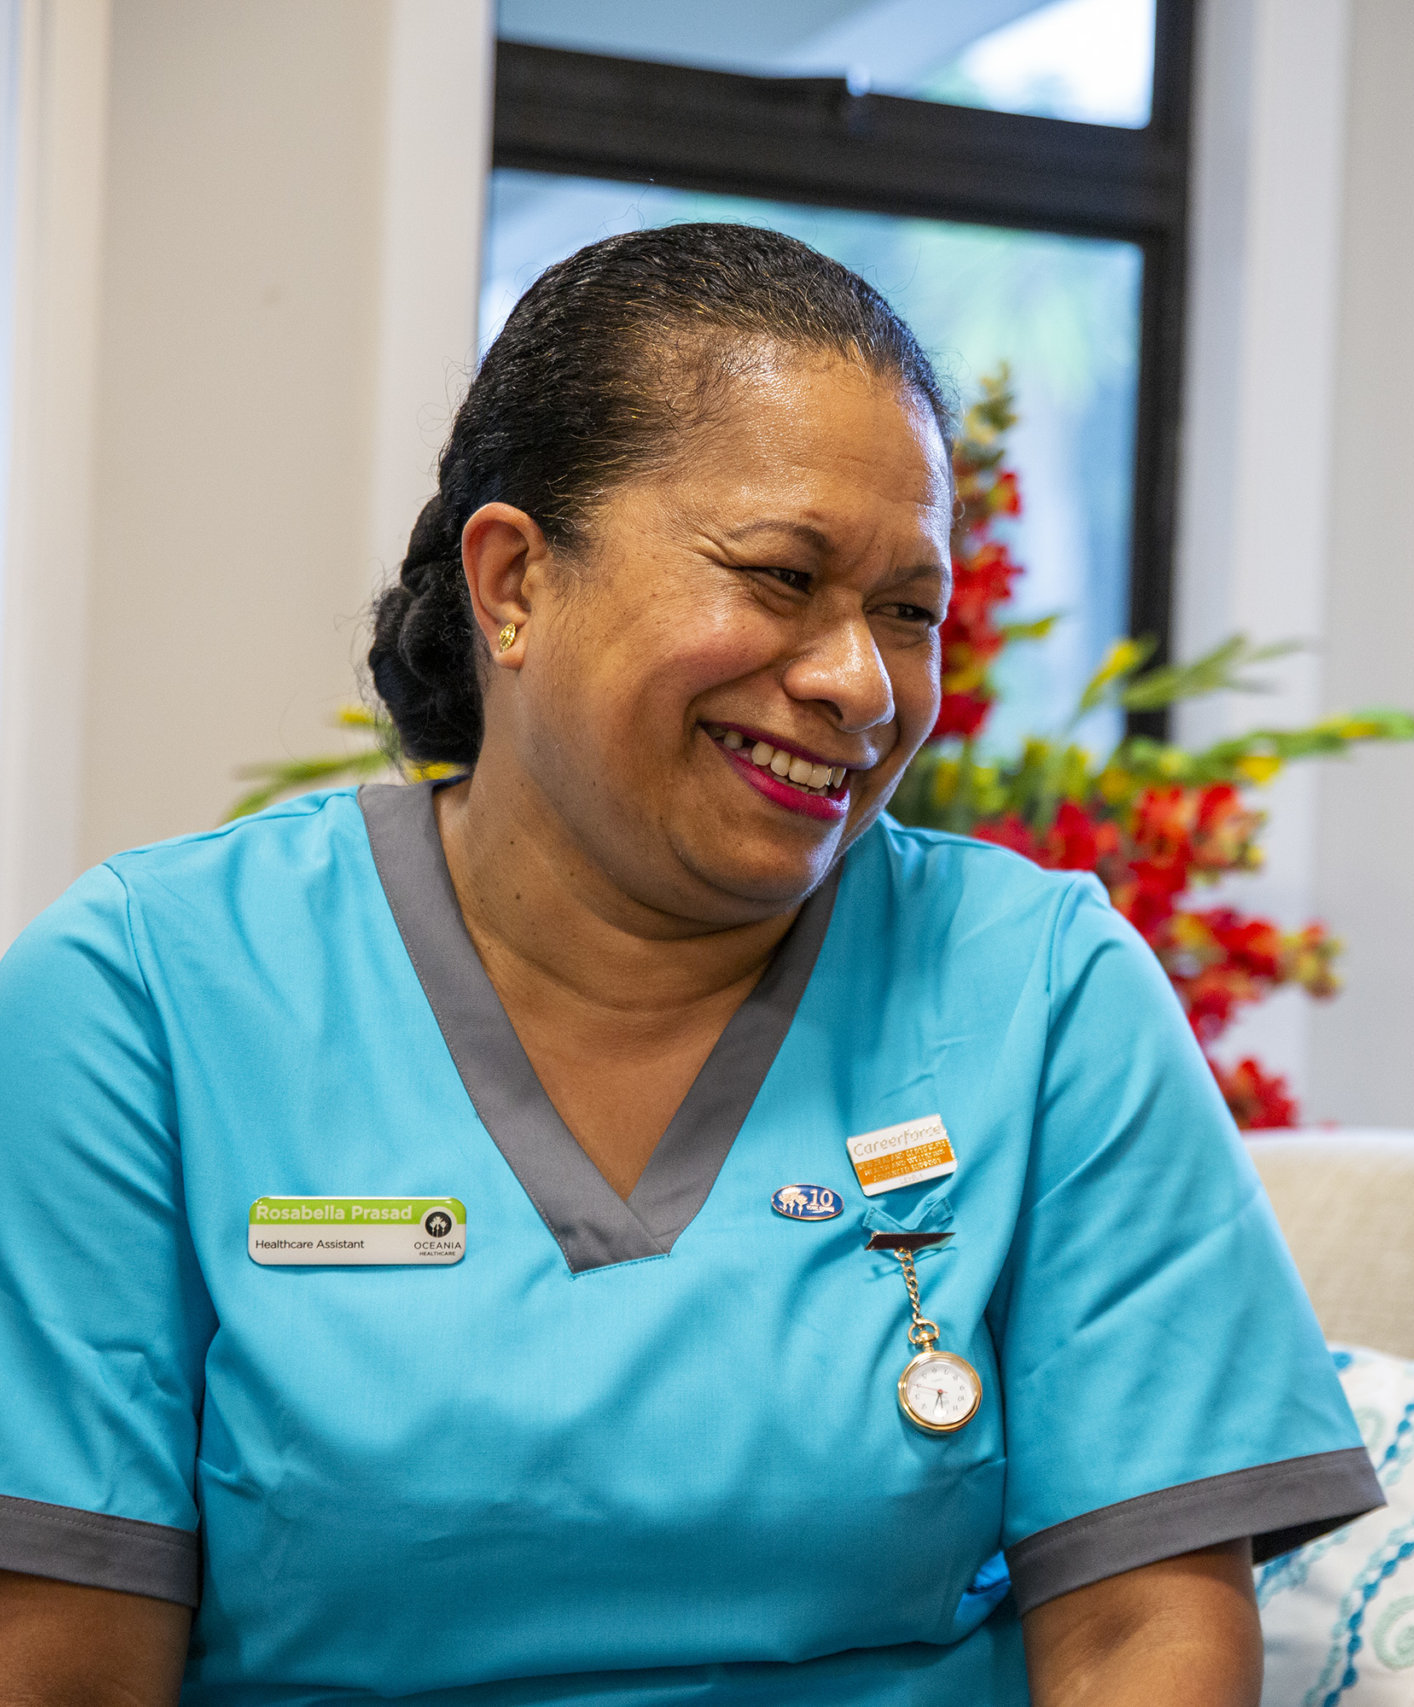 Rose our Oceania Healthcare Assistant smiling